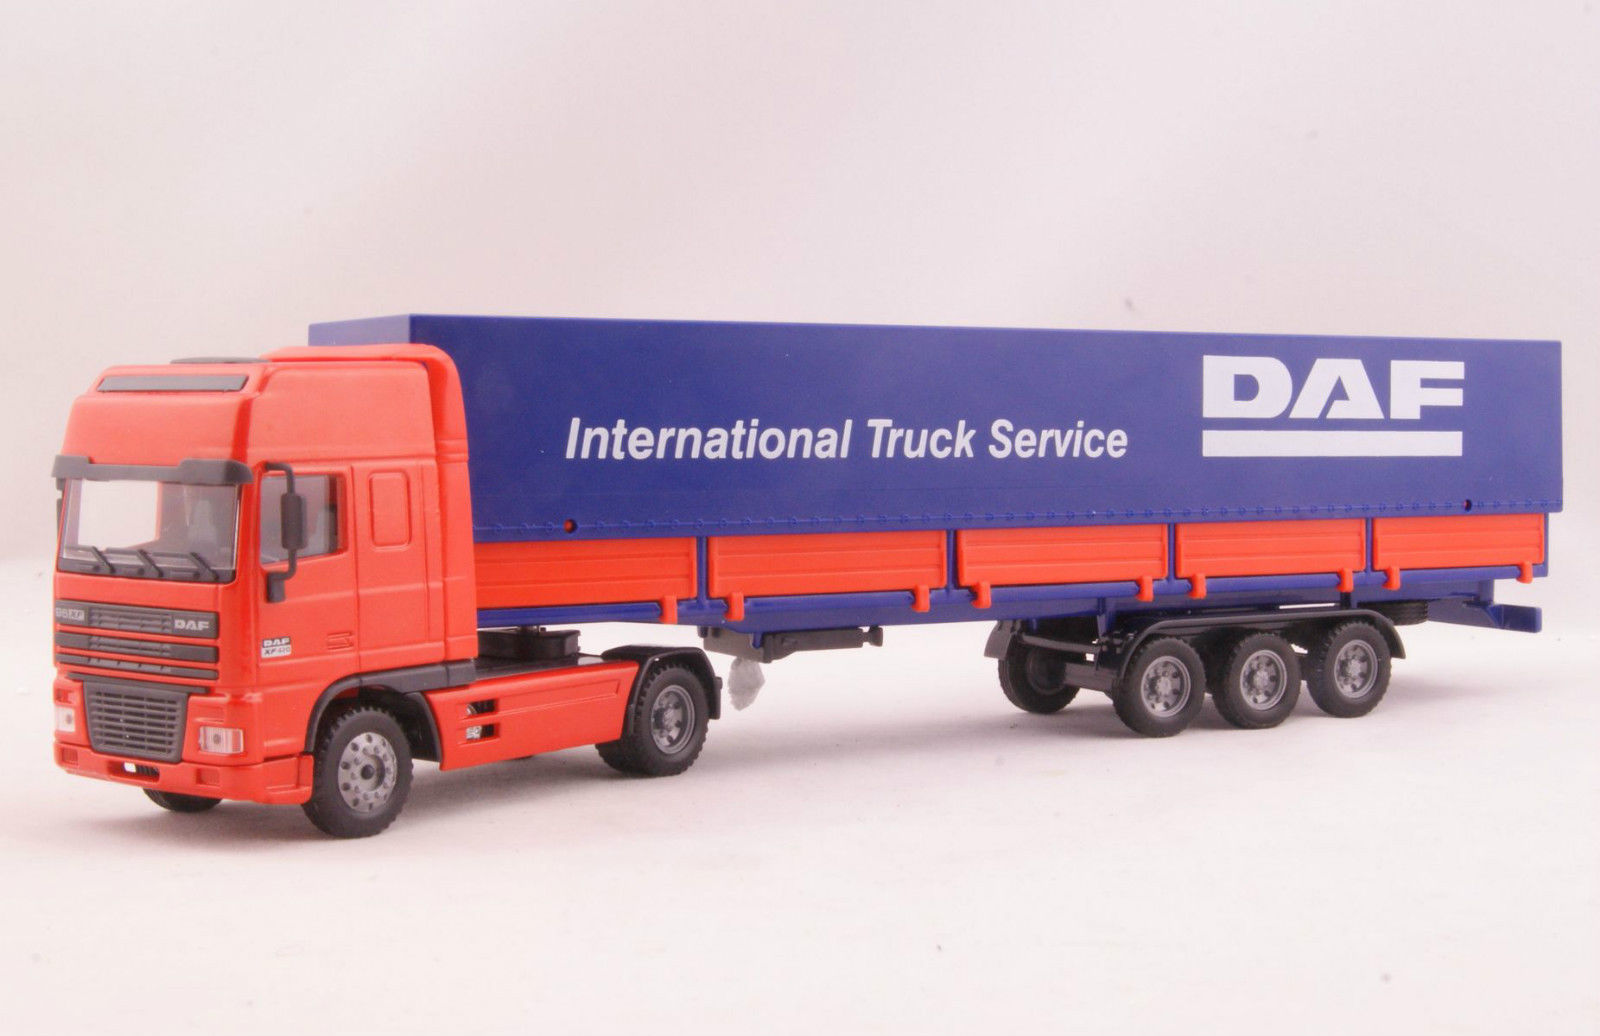 Truck Trailer Product Image